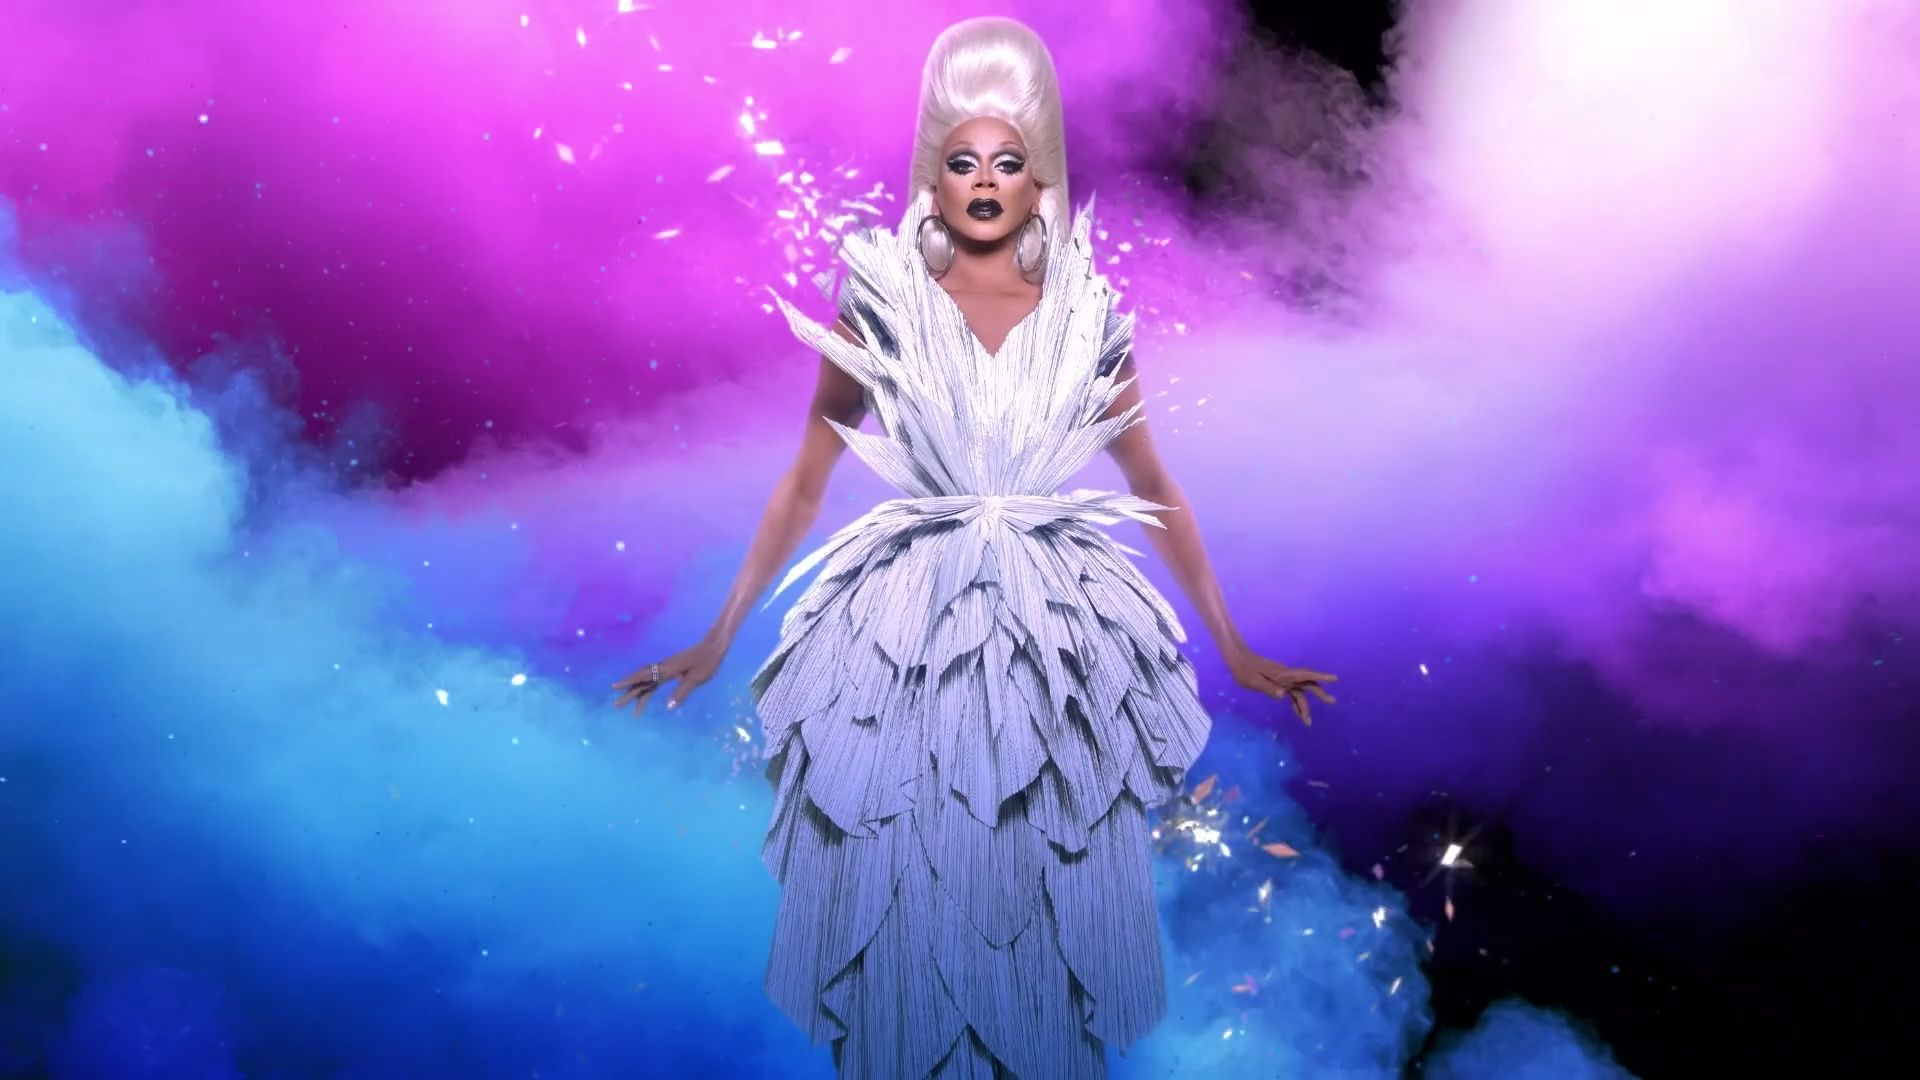 Rupaul S Drag Race Let S Overanalyze The Season 9 Trailer